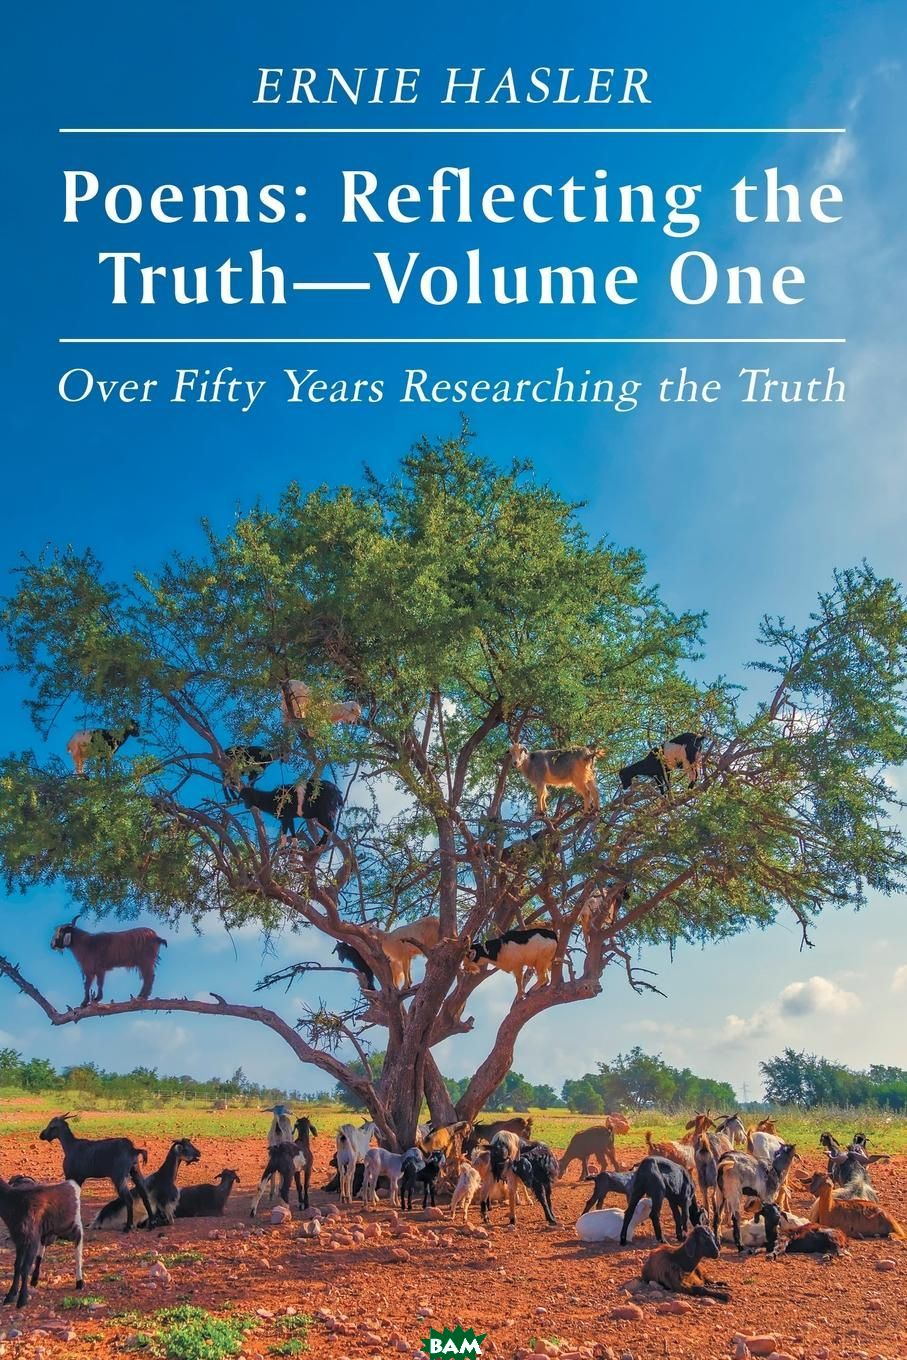 Купить Poems. Reflecting the Truth-Volume One: Over Fifty Years Researching the Truth, Ernie Hasler, 9781546297062